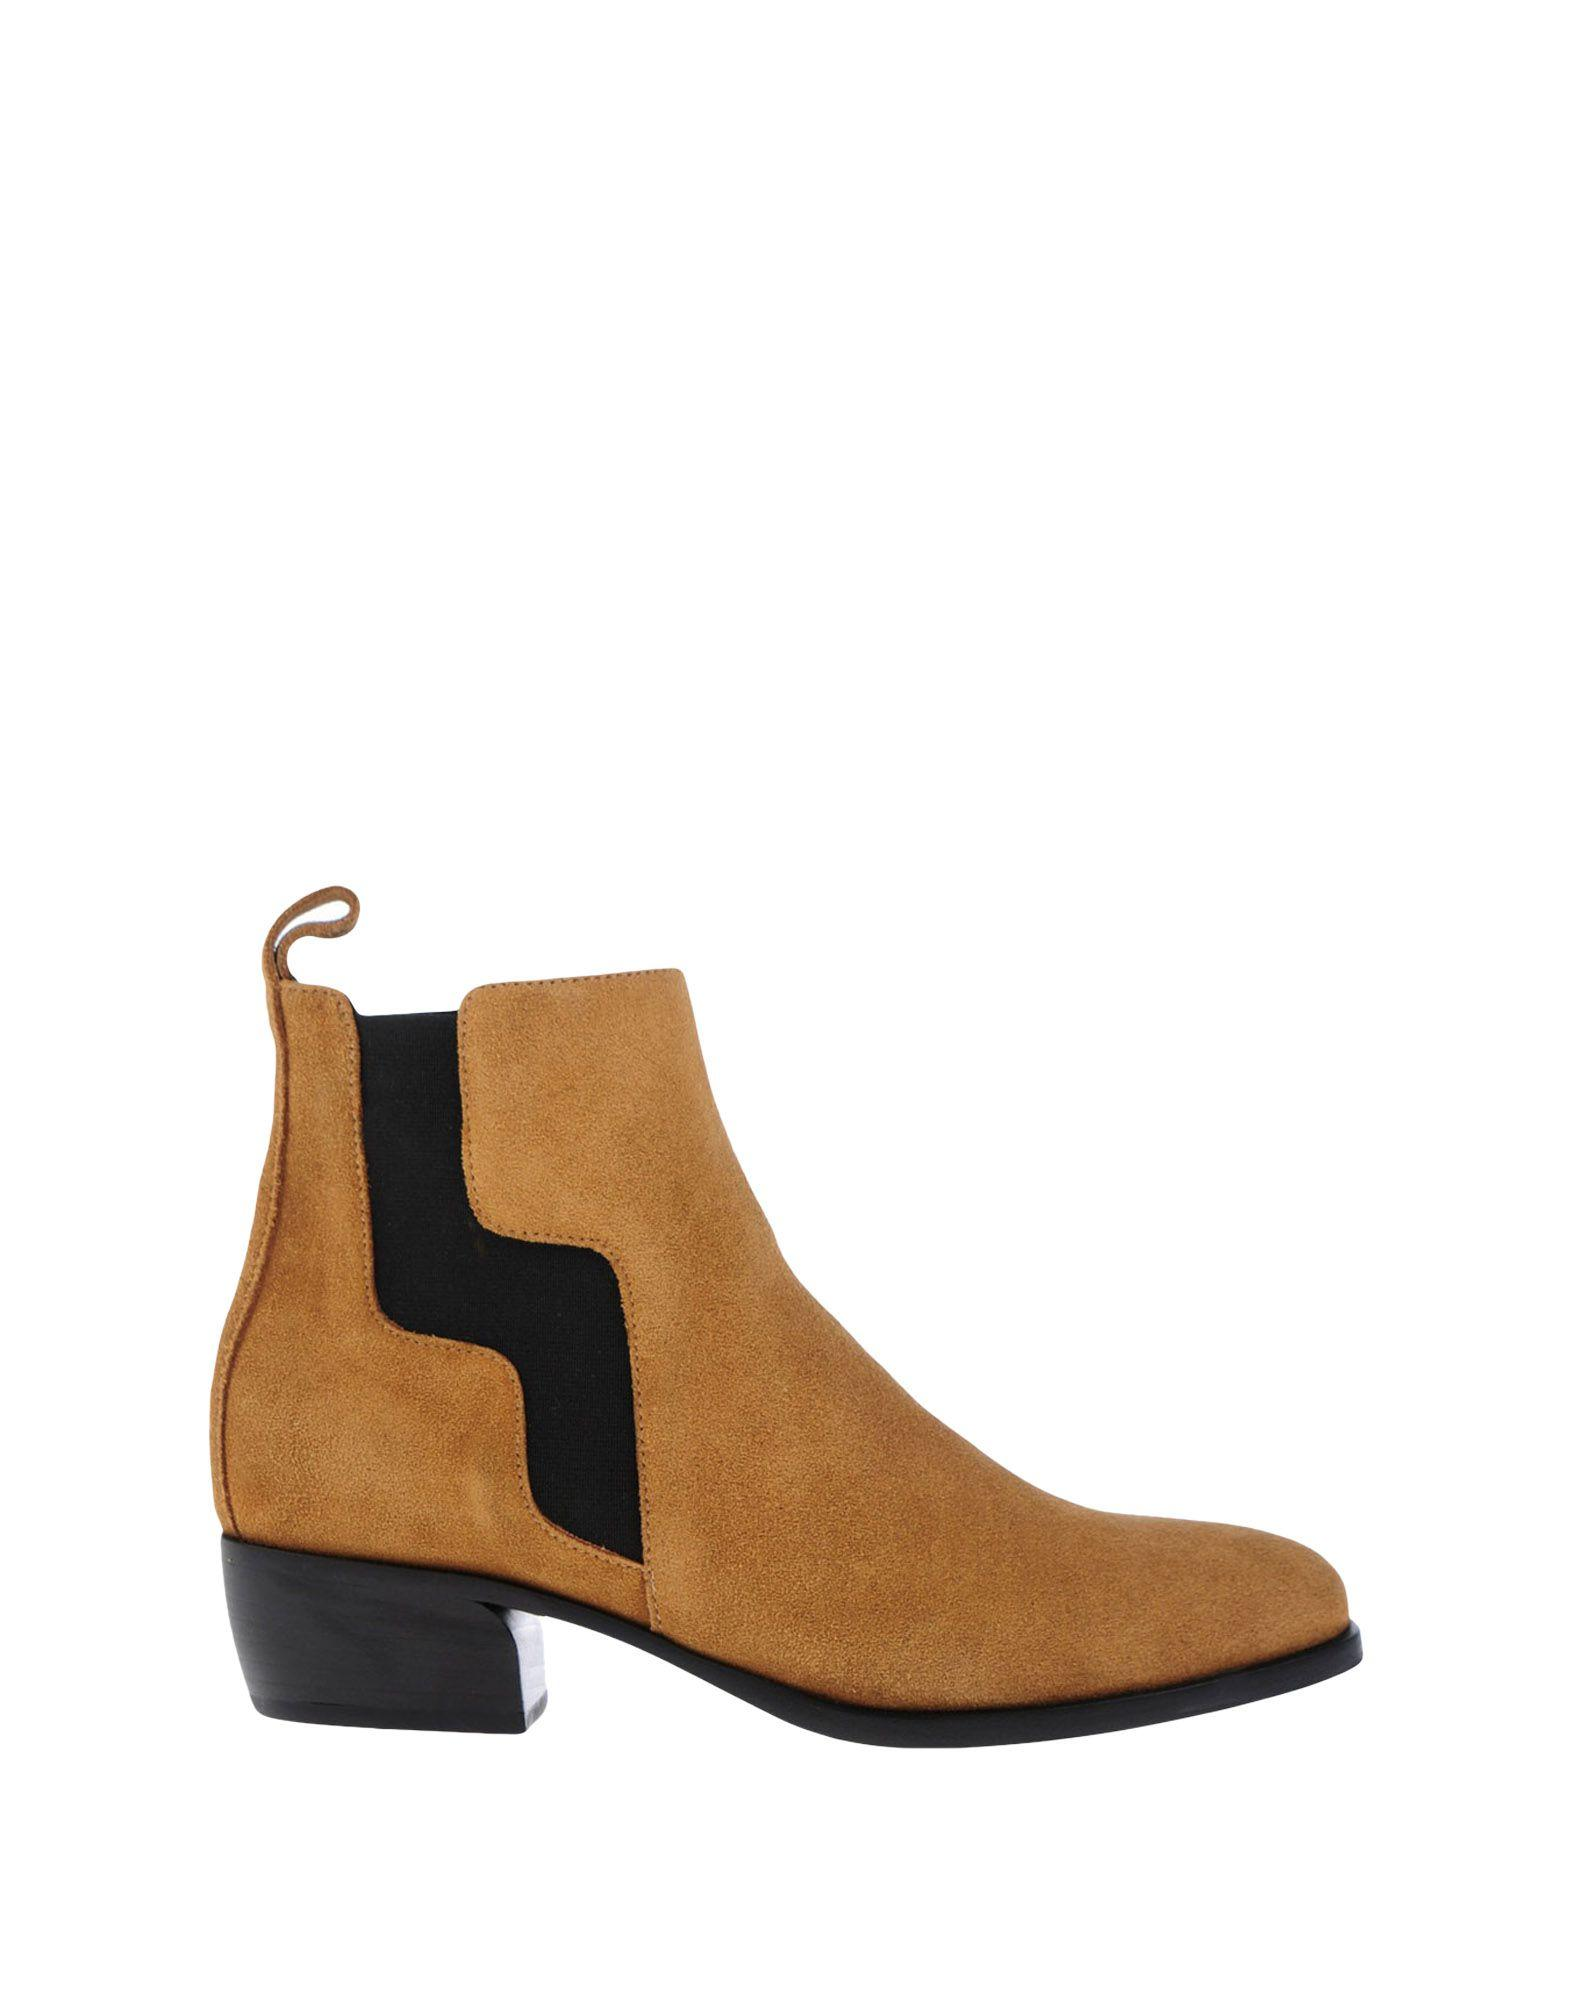 Pierre Hardy Ankle Boots In Sand